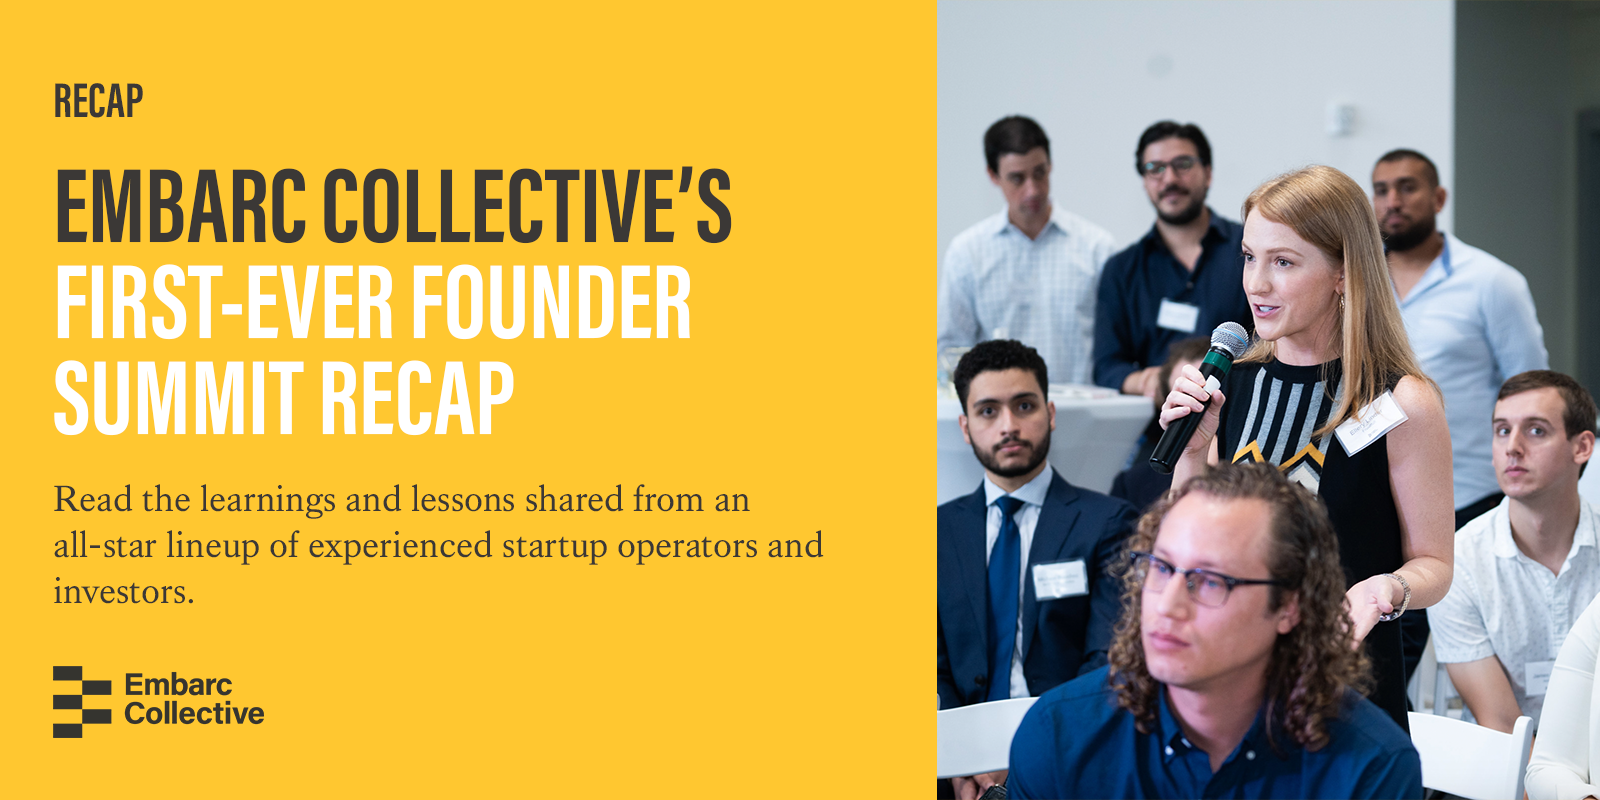 Read the learnings and lessons shared from an all-star lineup of experienced startup operators and investors.